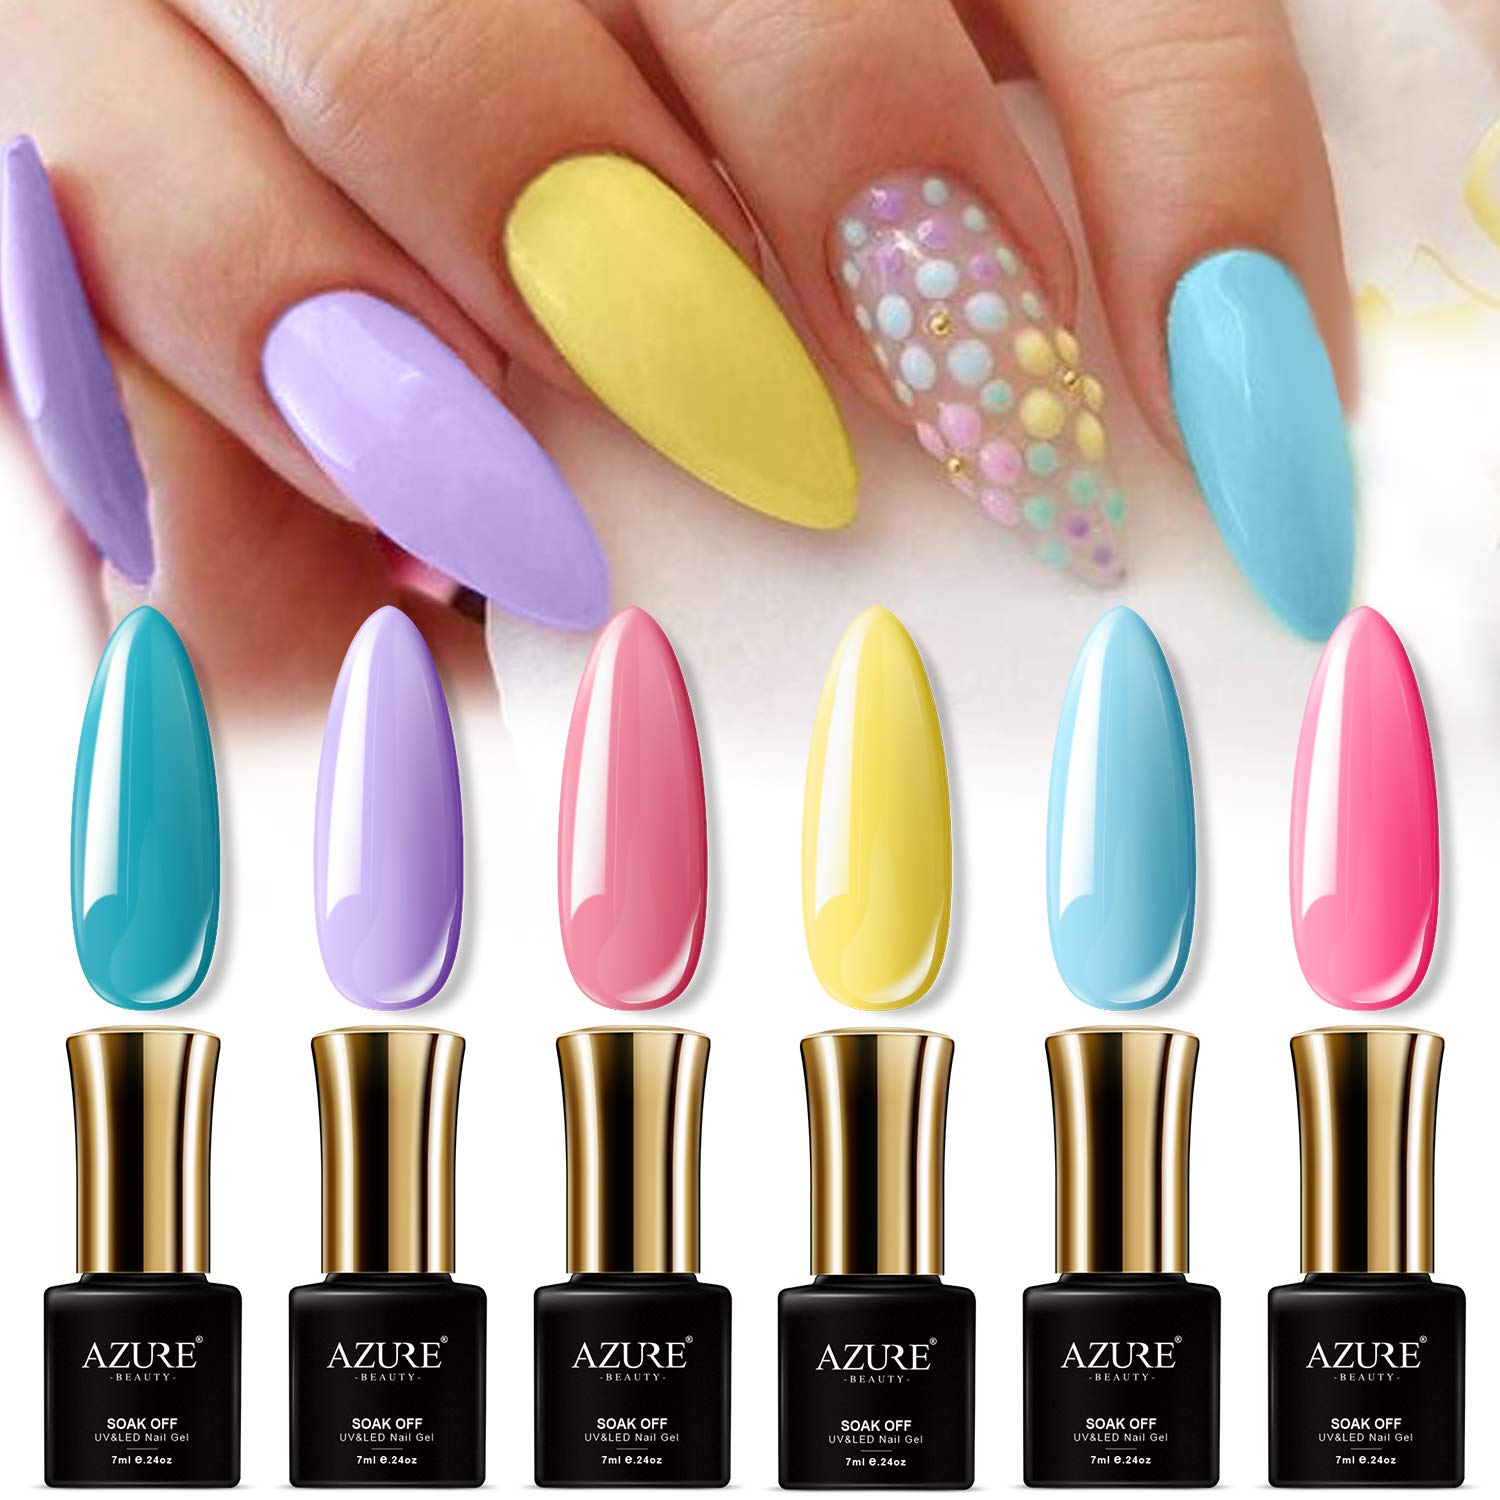 Amazon.com : AZUREBEAUTY Gel Nail Polish Set - 6PCS Sweet Candy Neon ...